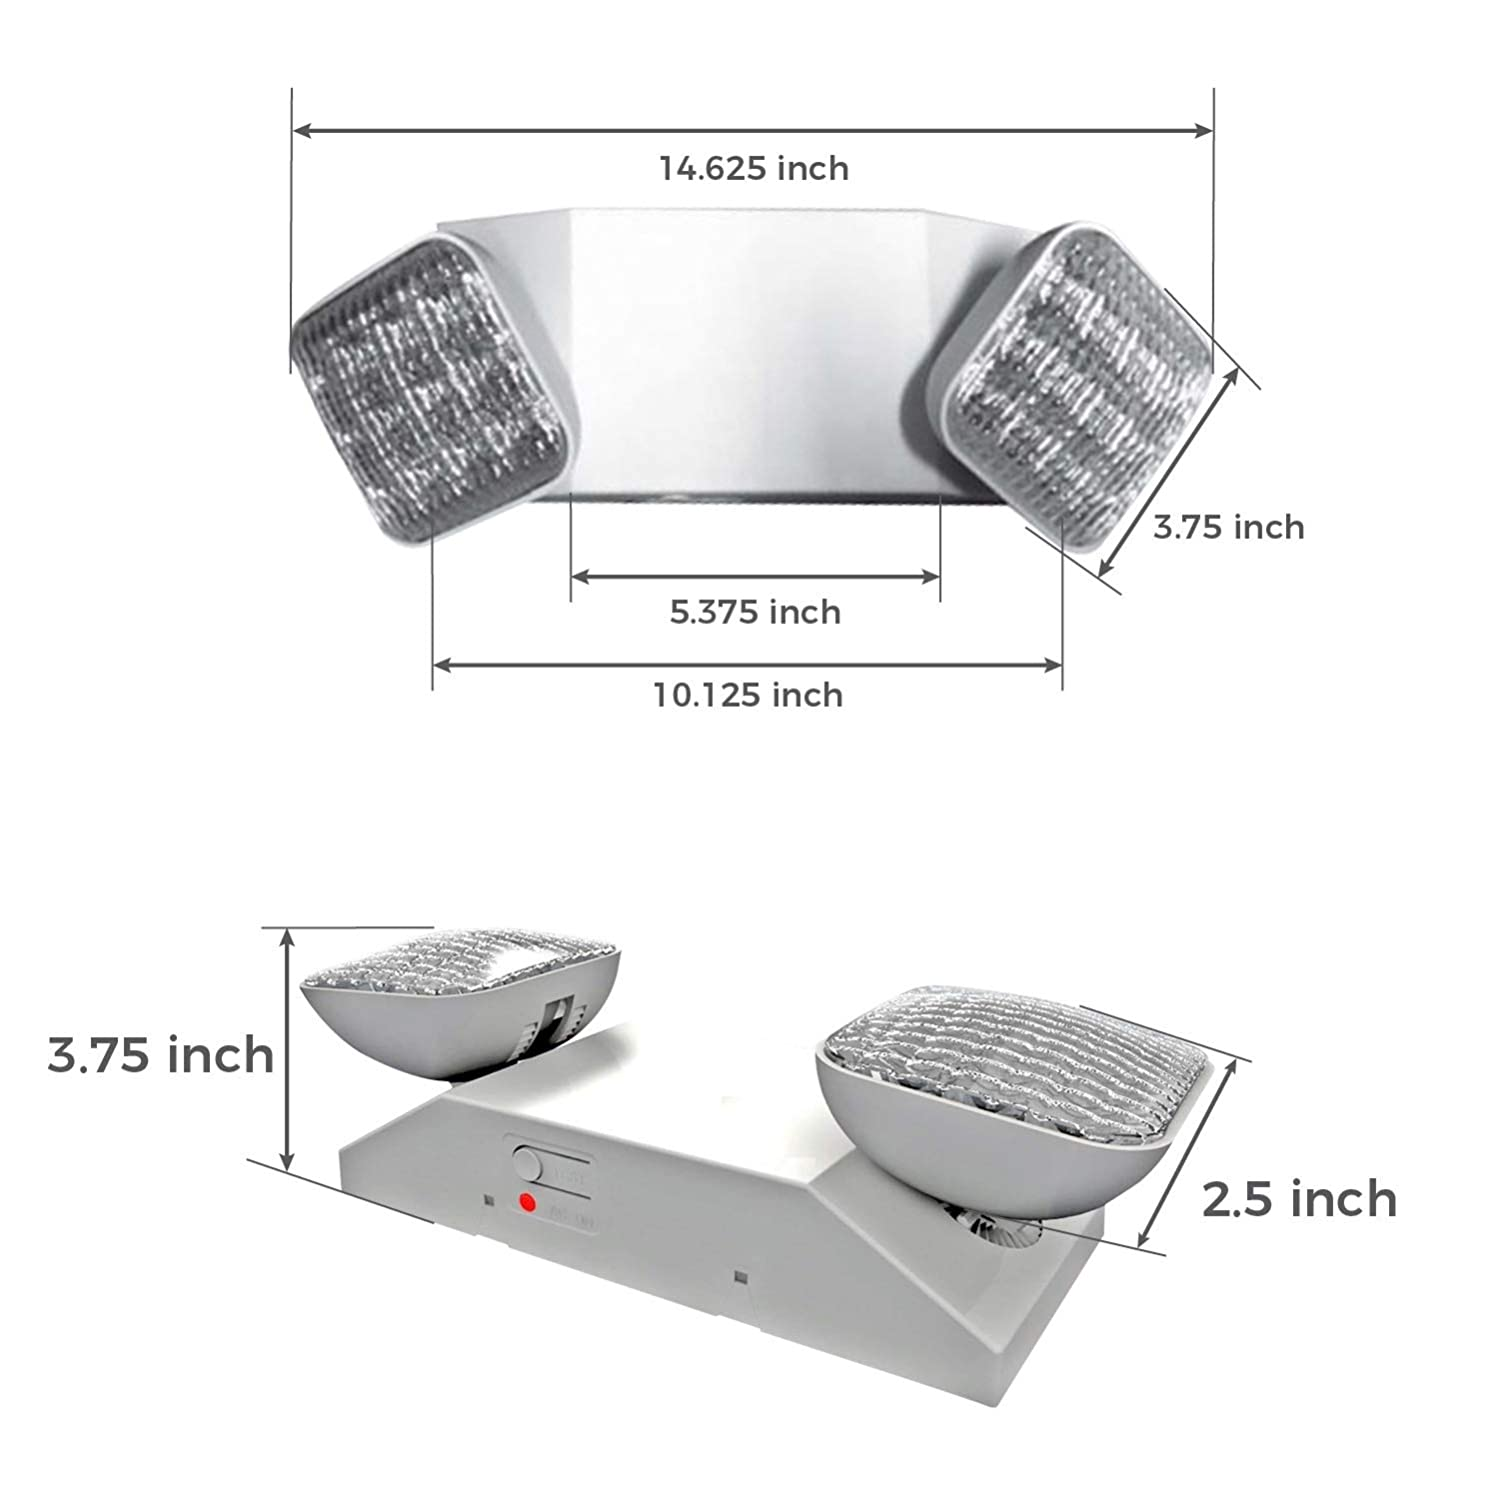 Ciata Lighting Emergency Lights Ultra Bright White Led Printed Circuit Board Light Wifi With Back Up Battery Adjustable Lamps 90 Minute Minimum Capacity Made From